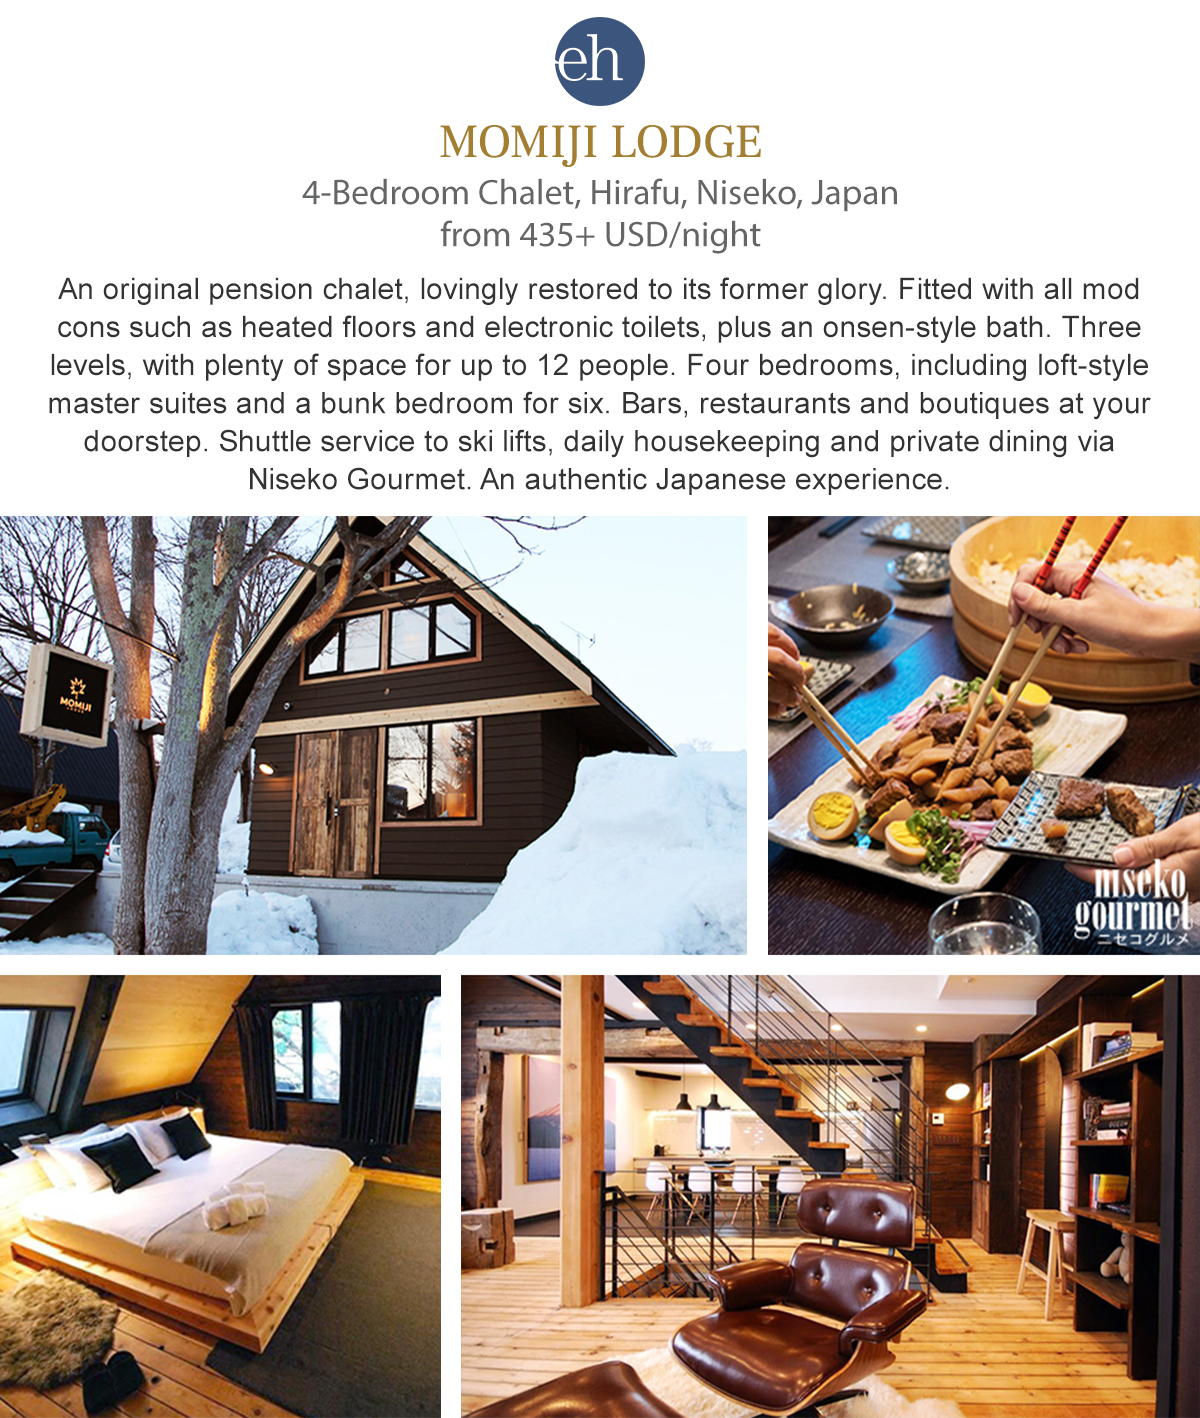 Momiji Lodge - Niseko, Japan